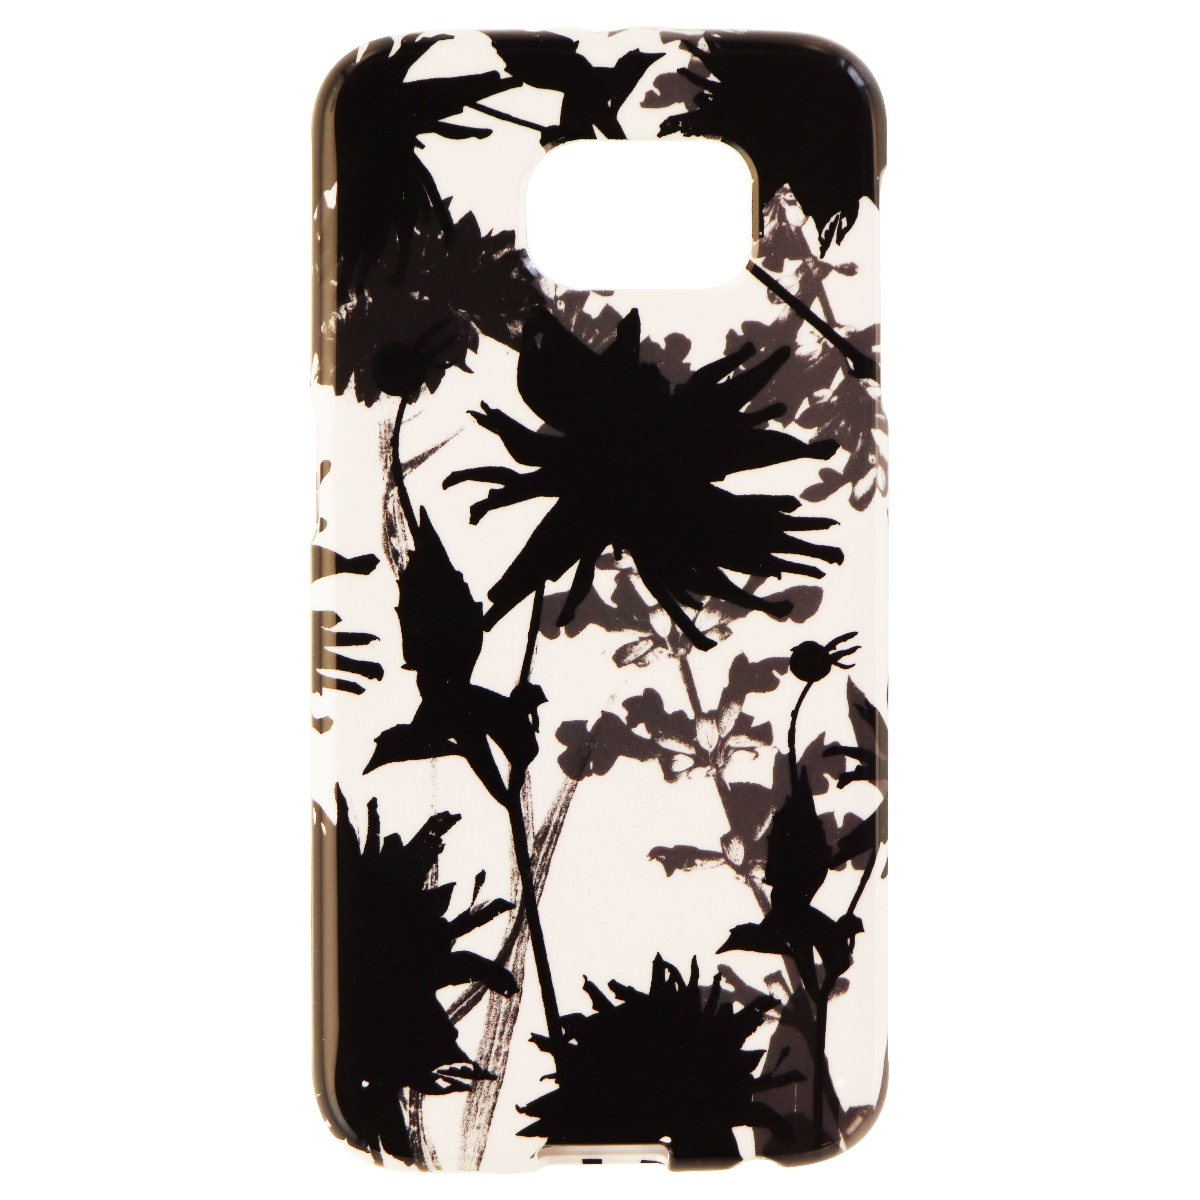 Insignia Soft Shell Protective Case Cover for Galaxy S6 - Floral Black / White